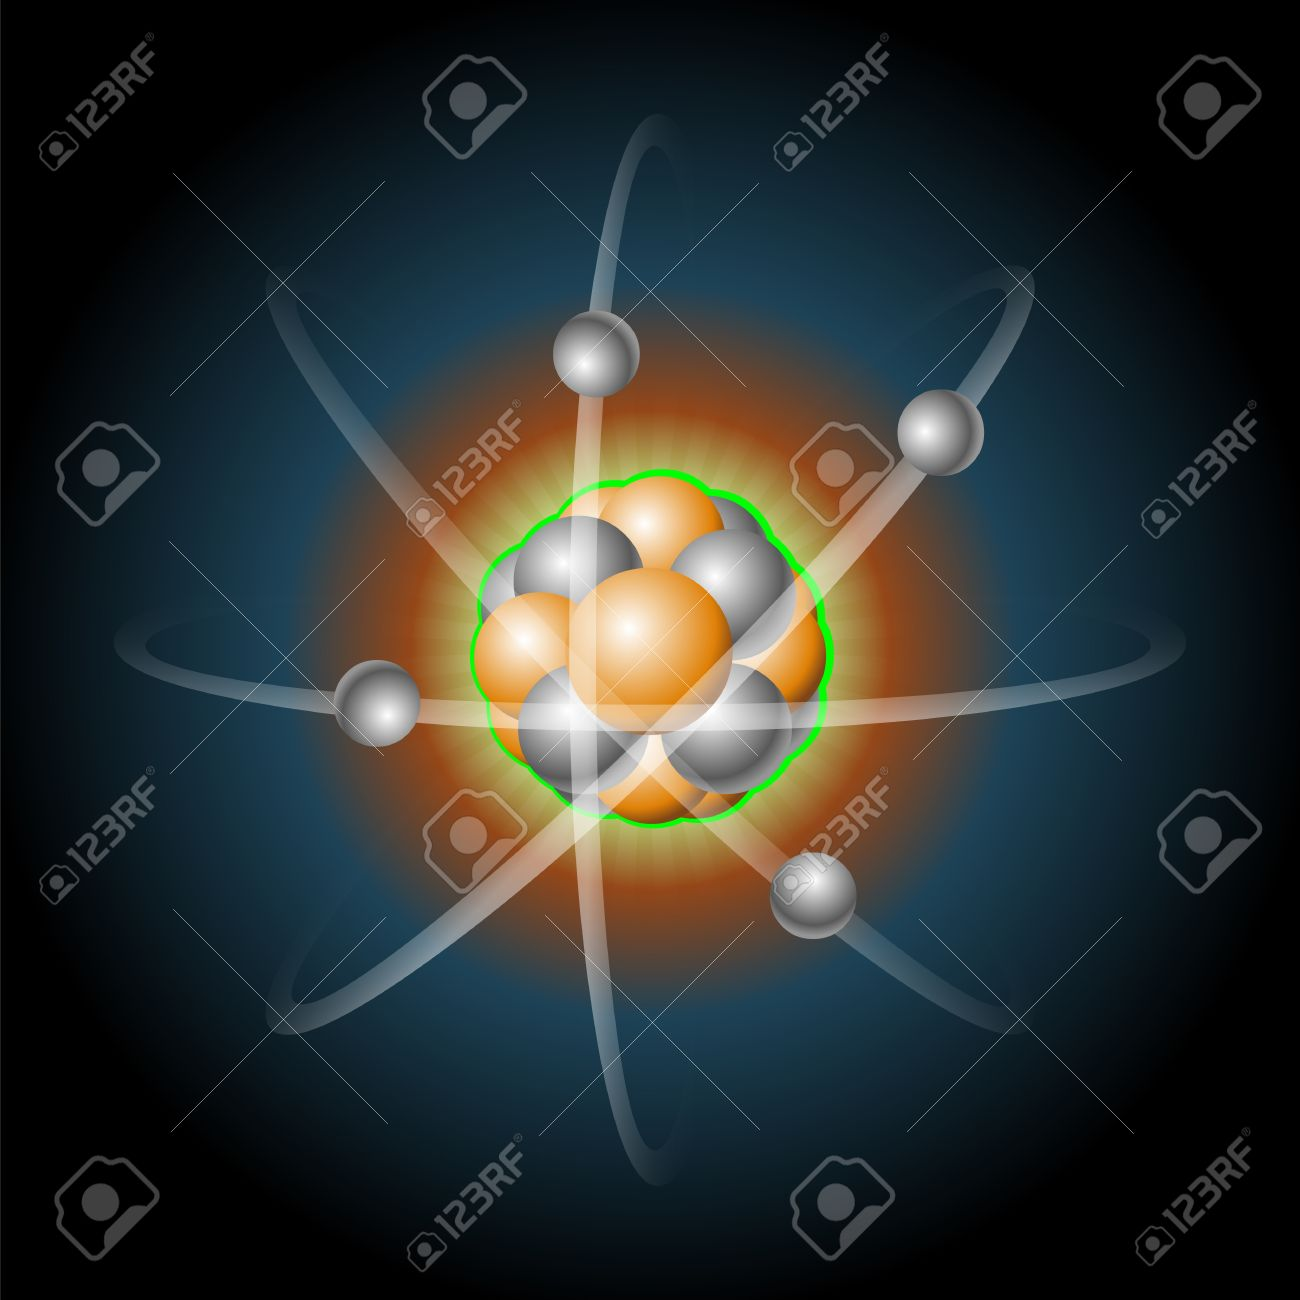 Detailed Illustration Of A Atom With Nucleus Of Protons And.